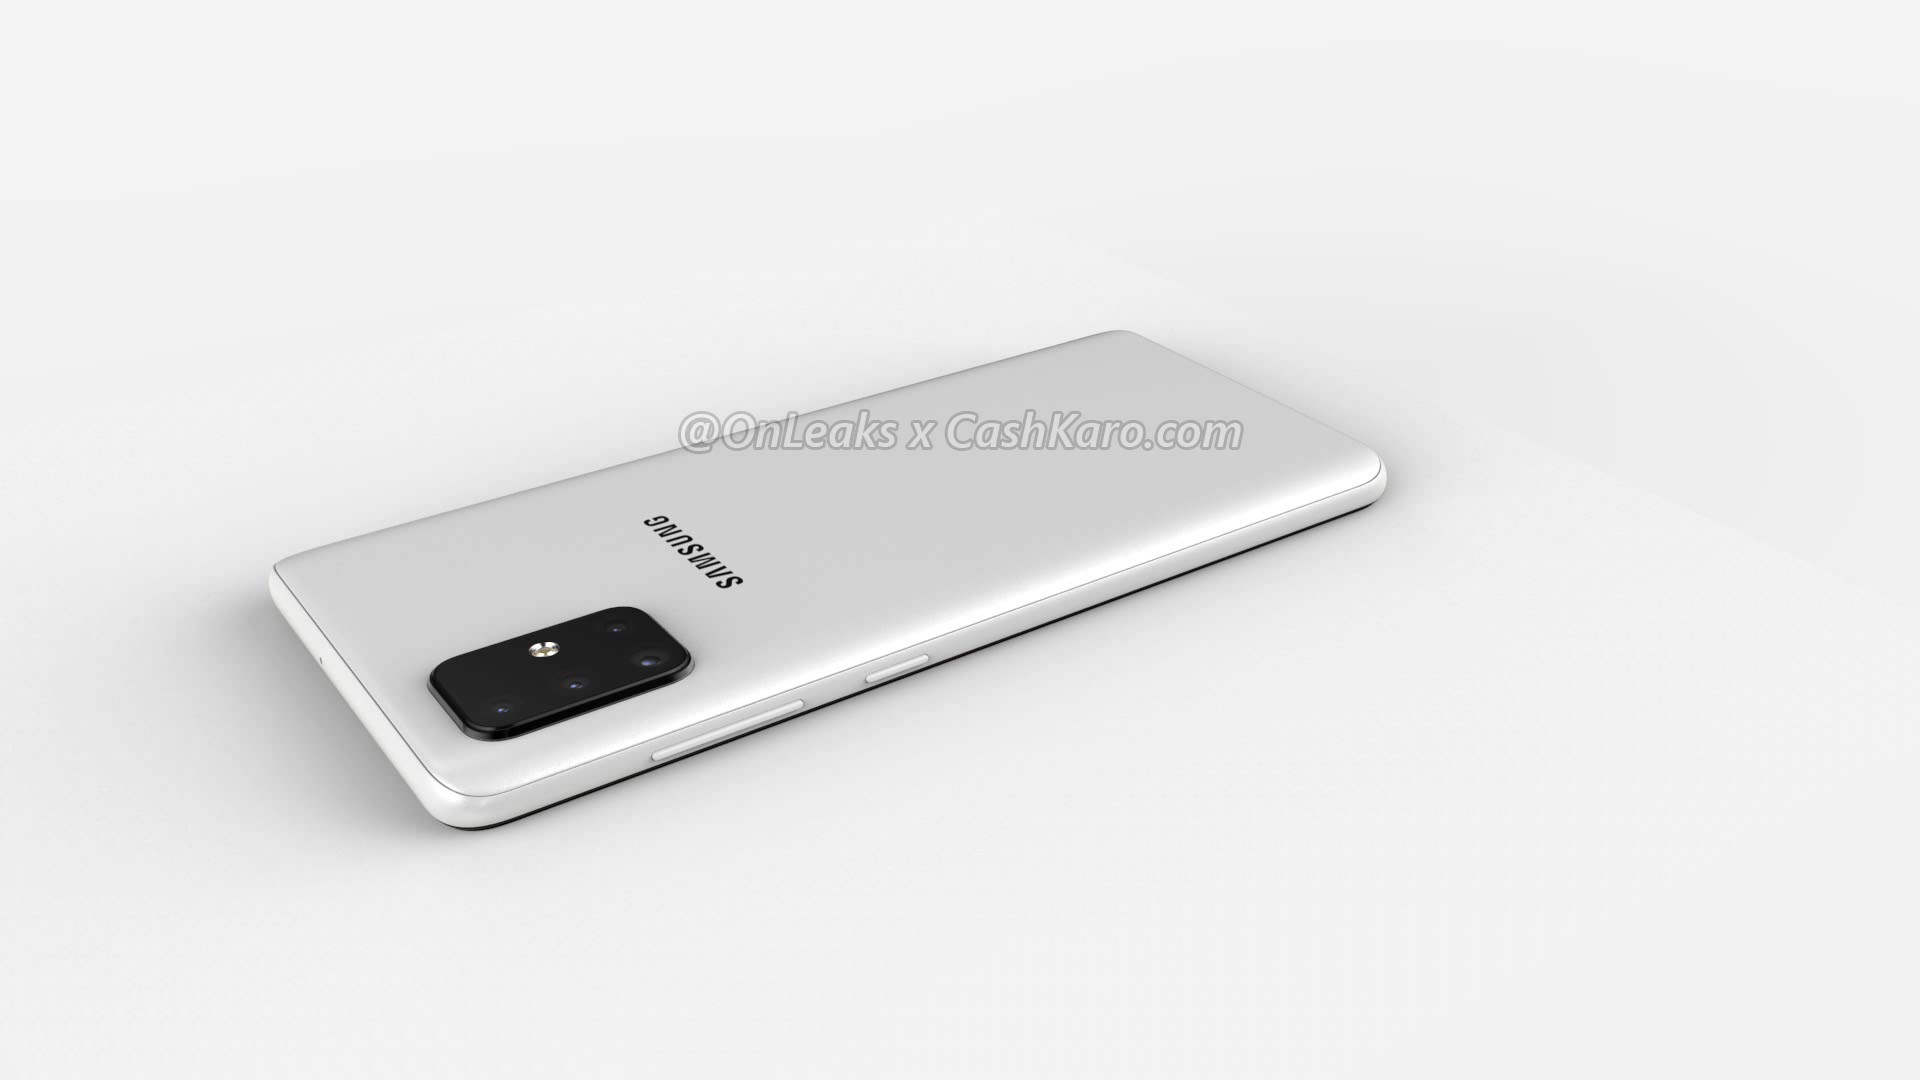 Samsung's upcoming Galaxy A71 smartphone render images and 360 Degree Video leaked online 5